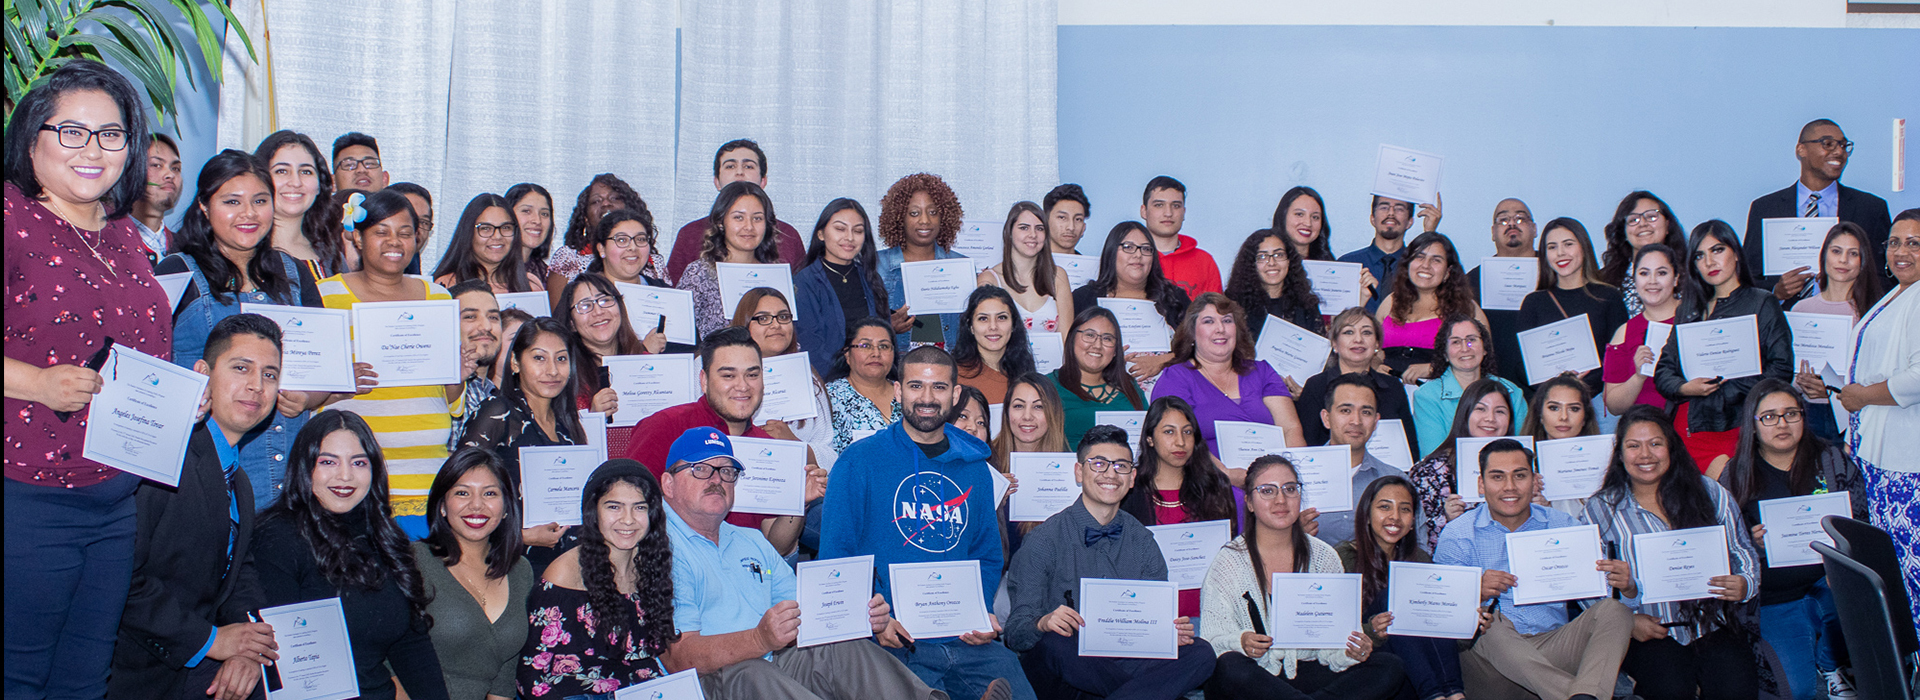 CSUSB hosts SAIL's 27th Annual Recognition Reception